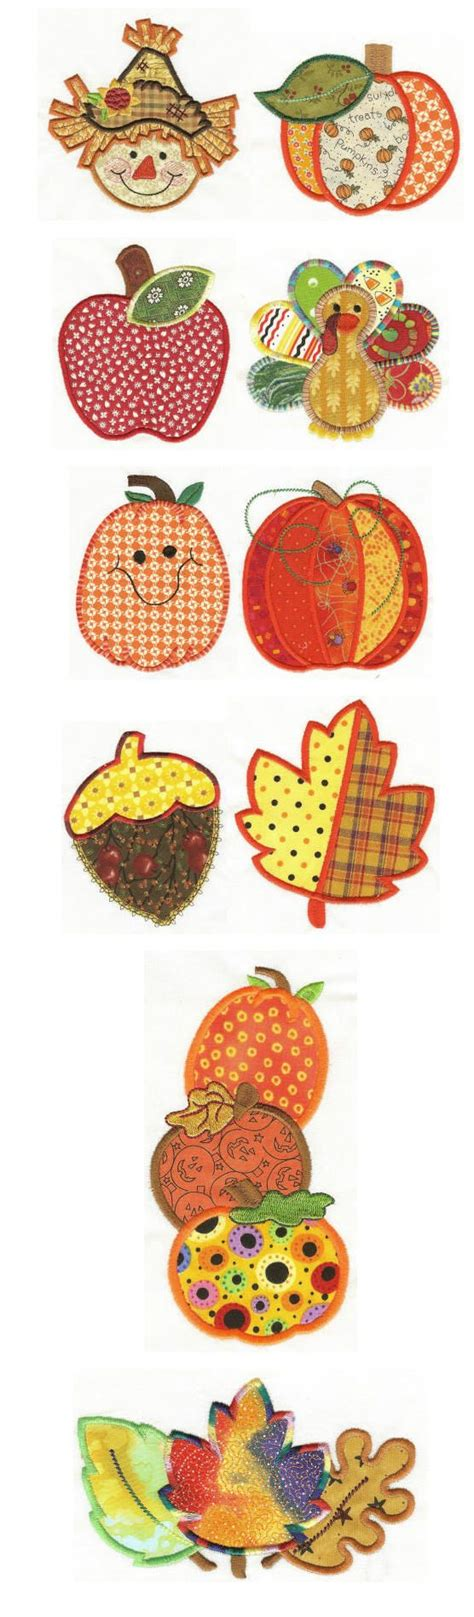 free applique designs for embroidery machine best 20 machine embroidery applique ideas on